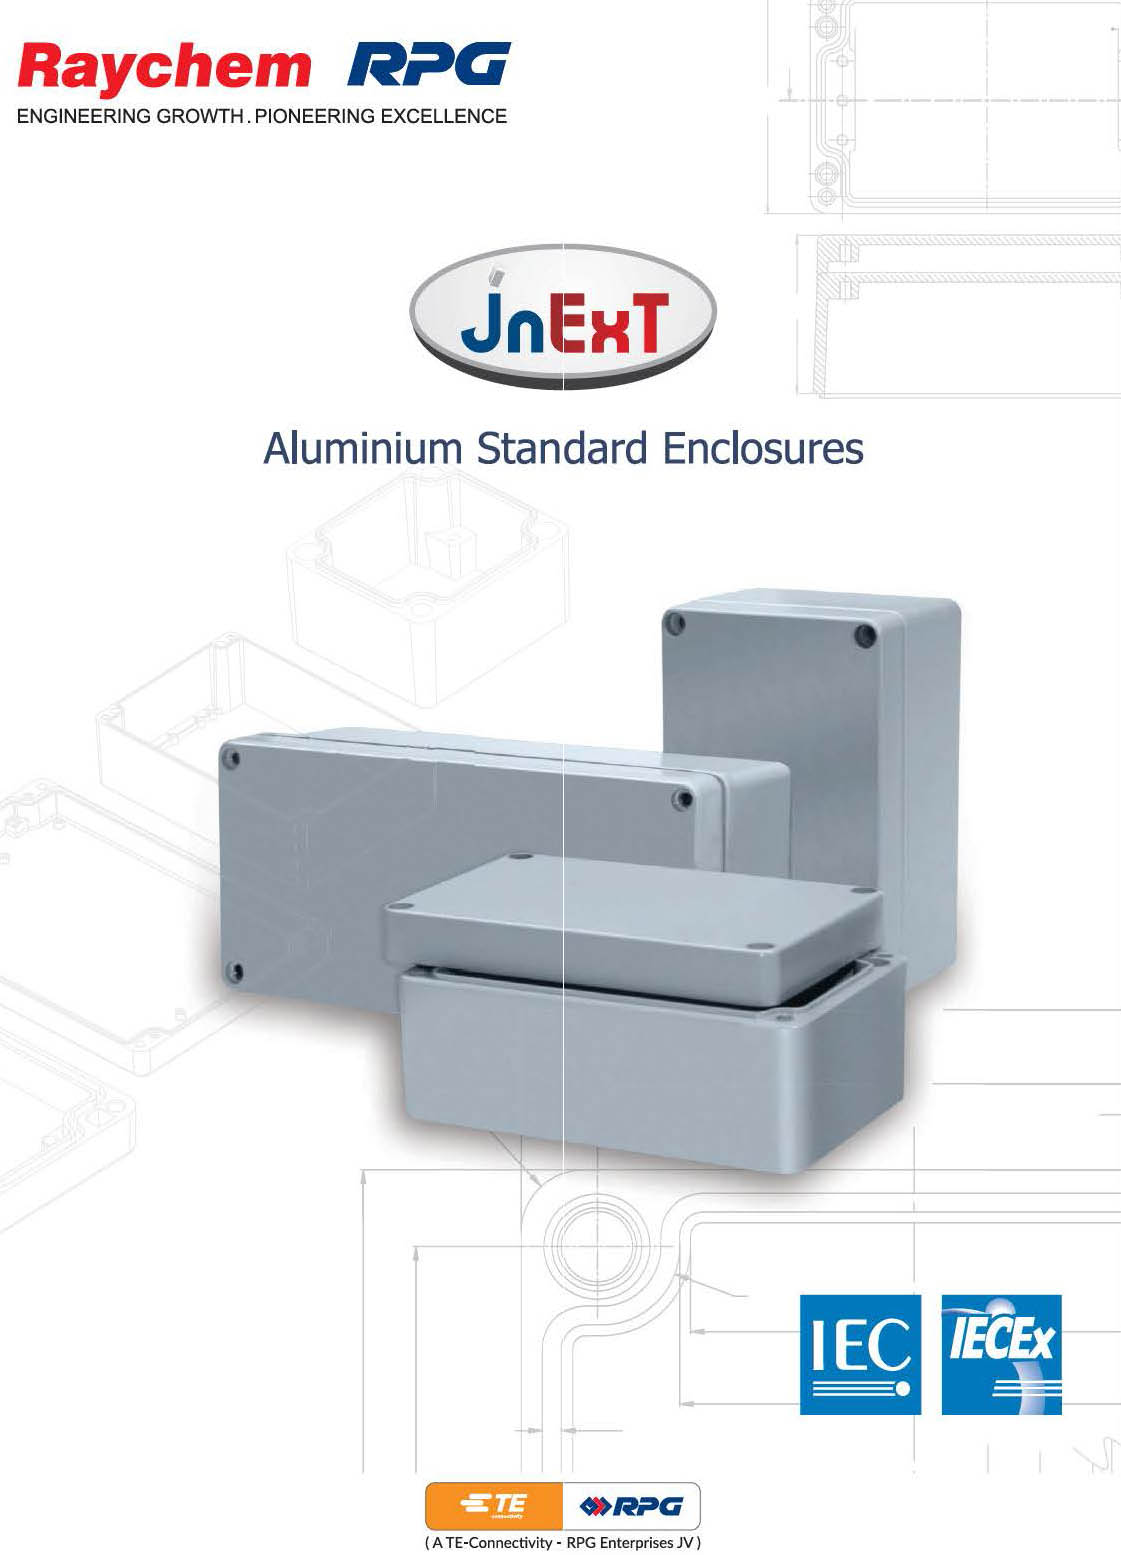 Raychem RPG - IP68 Aluminum Standard Enclosures